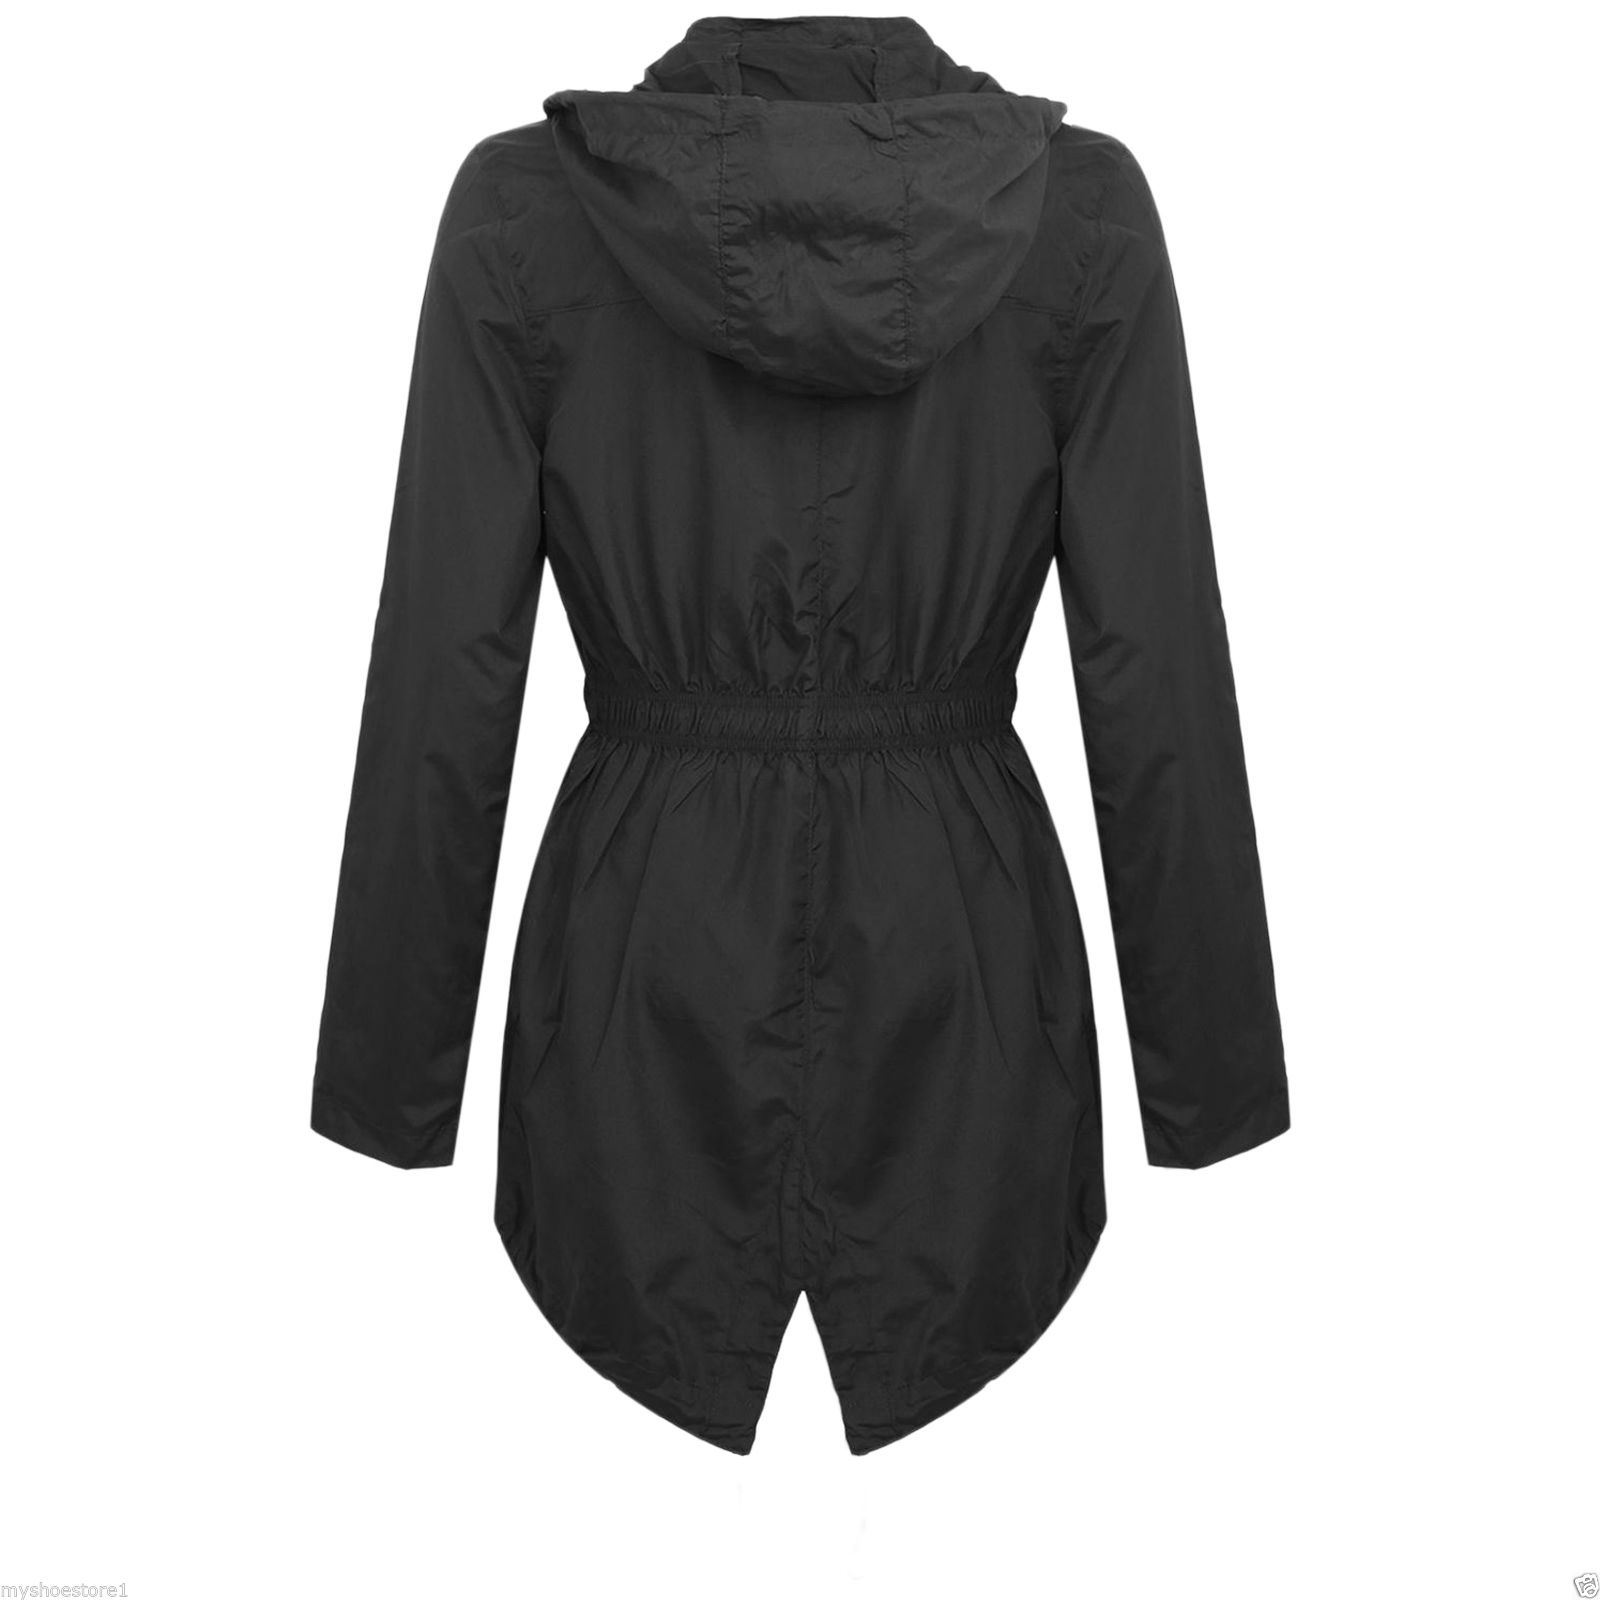 huge inventory largest selection of 2019 new collection Details about New Womens Plus Size Light Showerproof Rain Jacket Hooded Mac